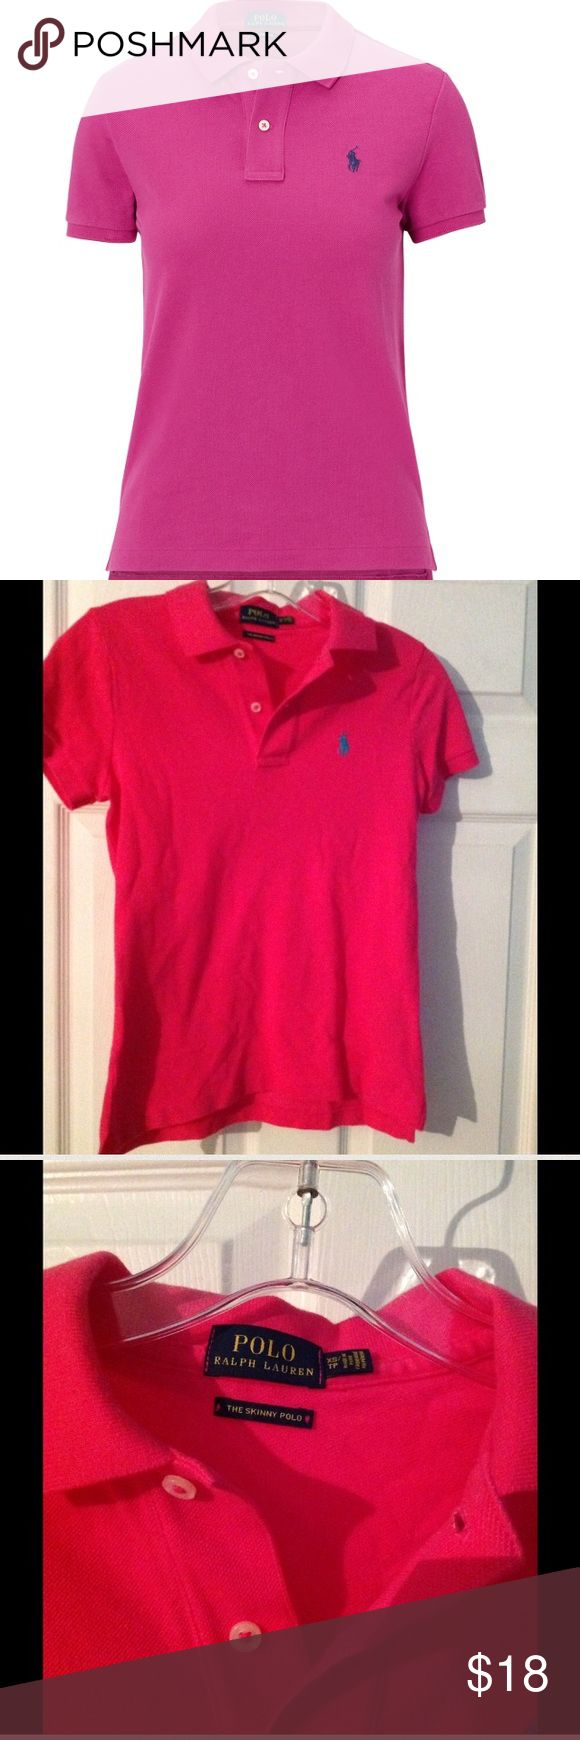 Ralph Lauren Fuschia  Pink Polo Shirt Slim Fuschia Pink Ralph Lauren Polo with blue horse. Ralph Lauren Quality. Excellent Condition. Vibrant color. Polo by Ralph Lauren Tops